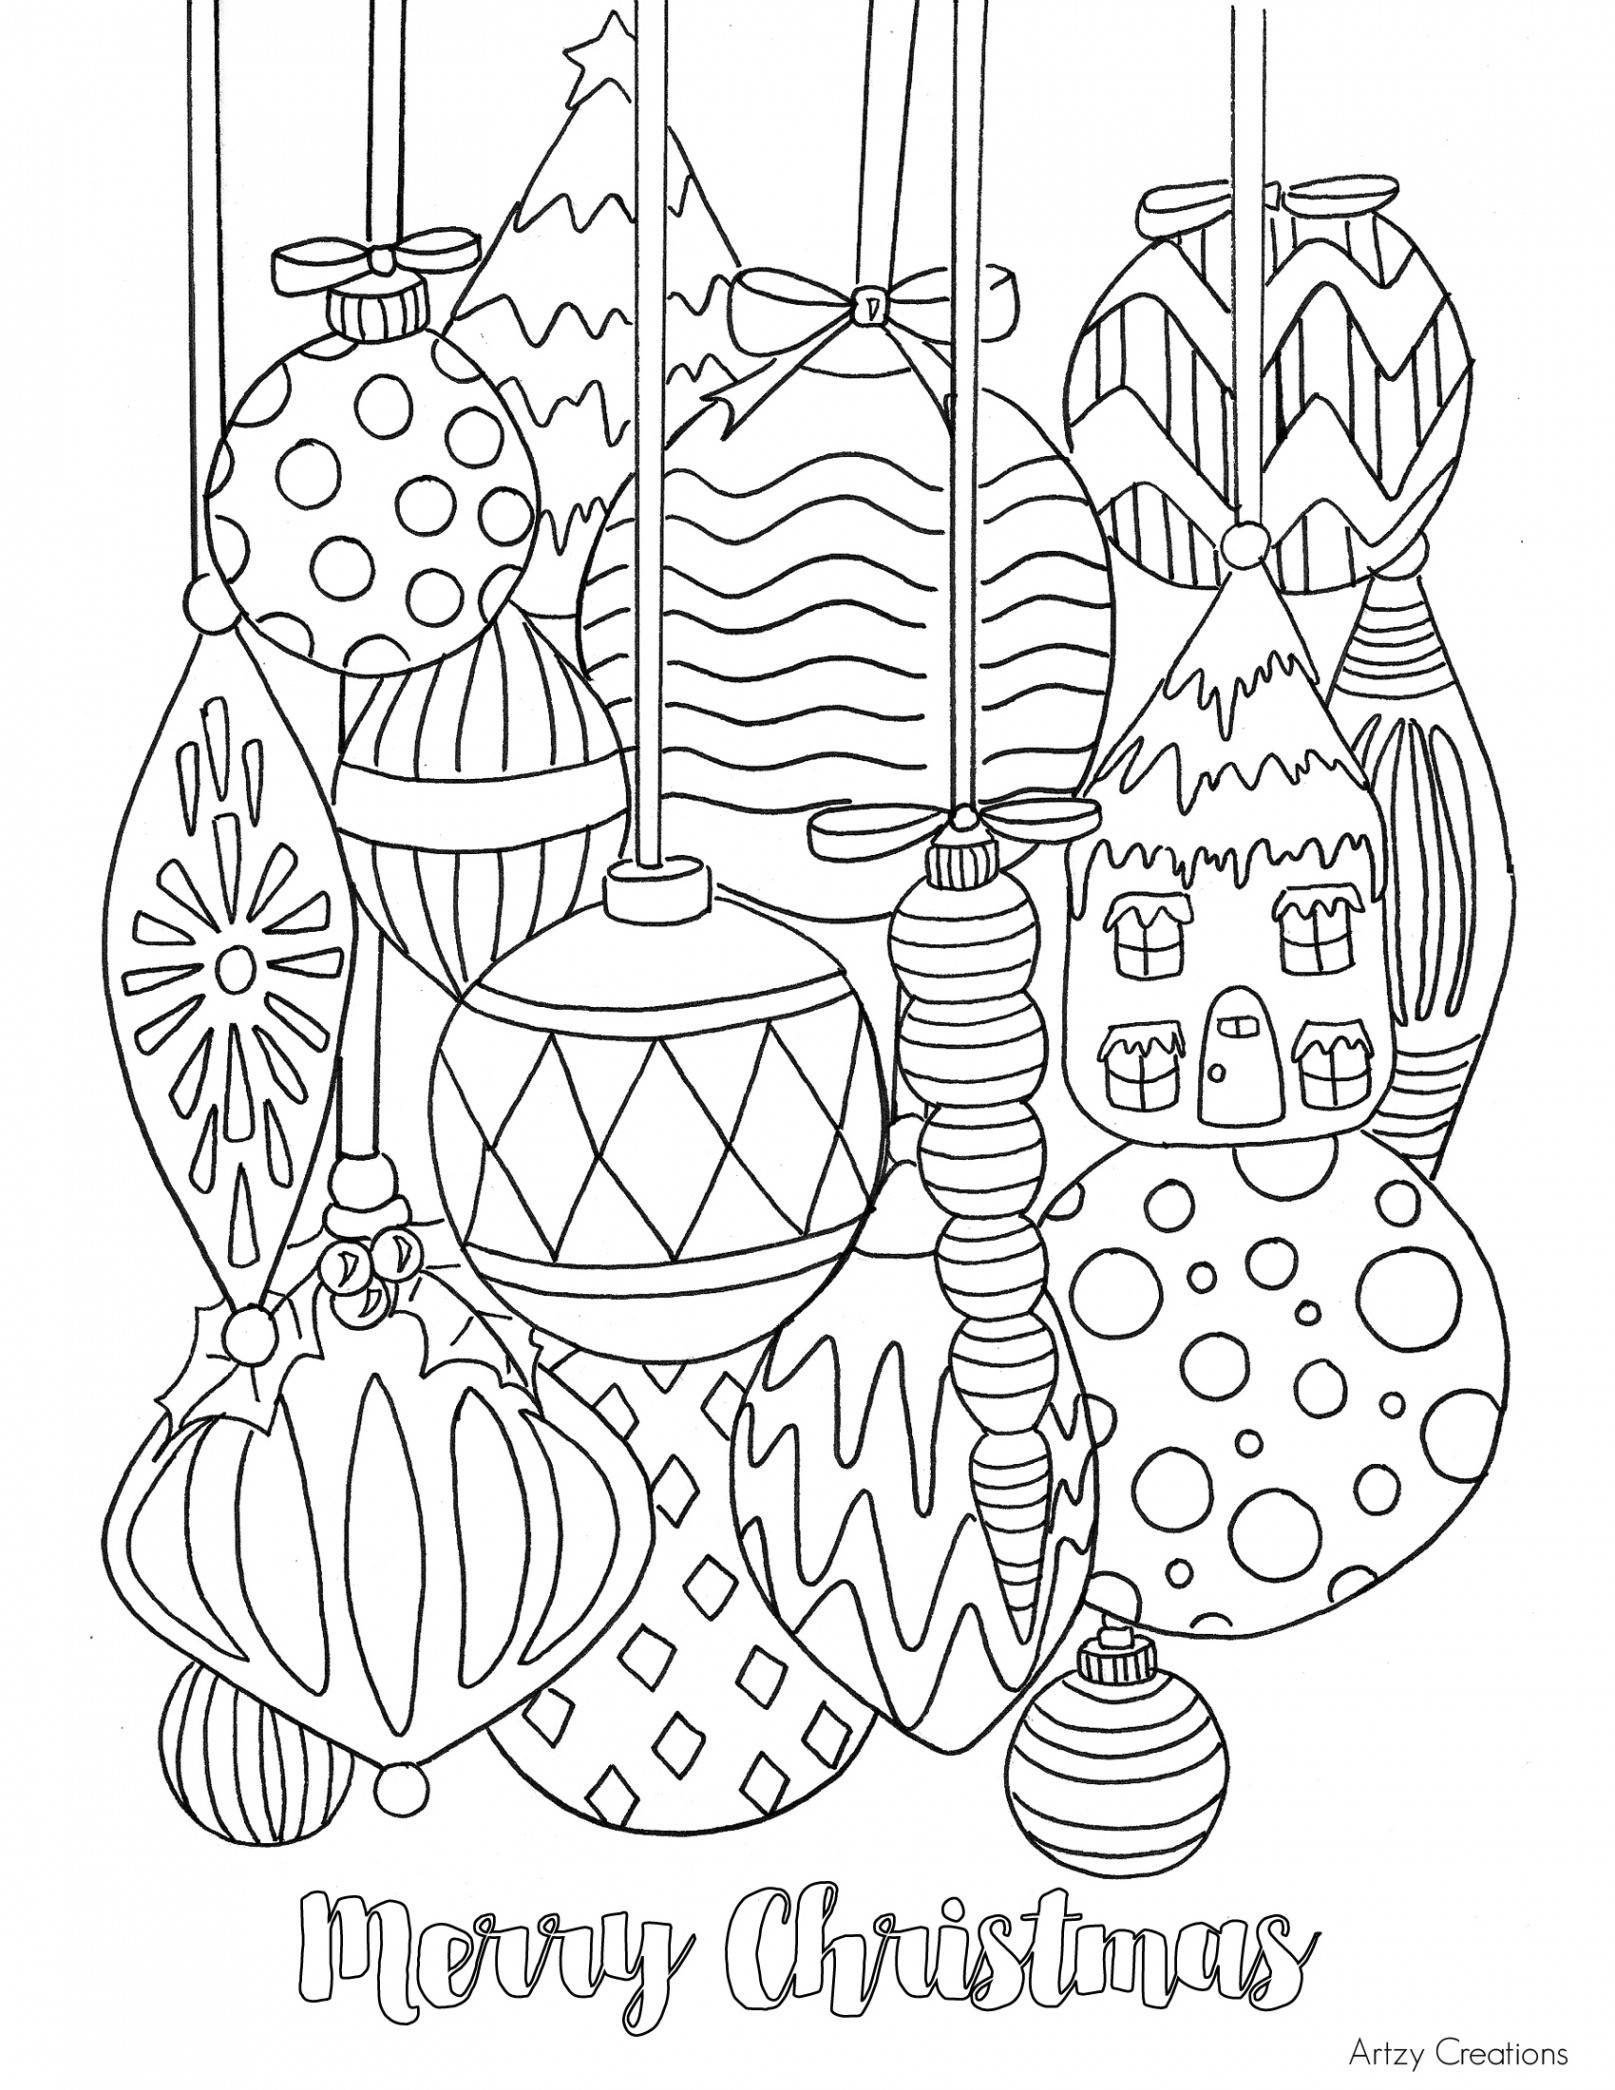 Christmas Colouring Pages Ks2 With Ks1 Printable Coloring Page For Kids